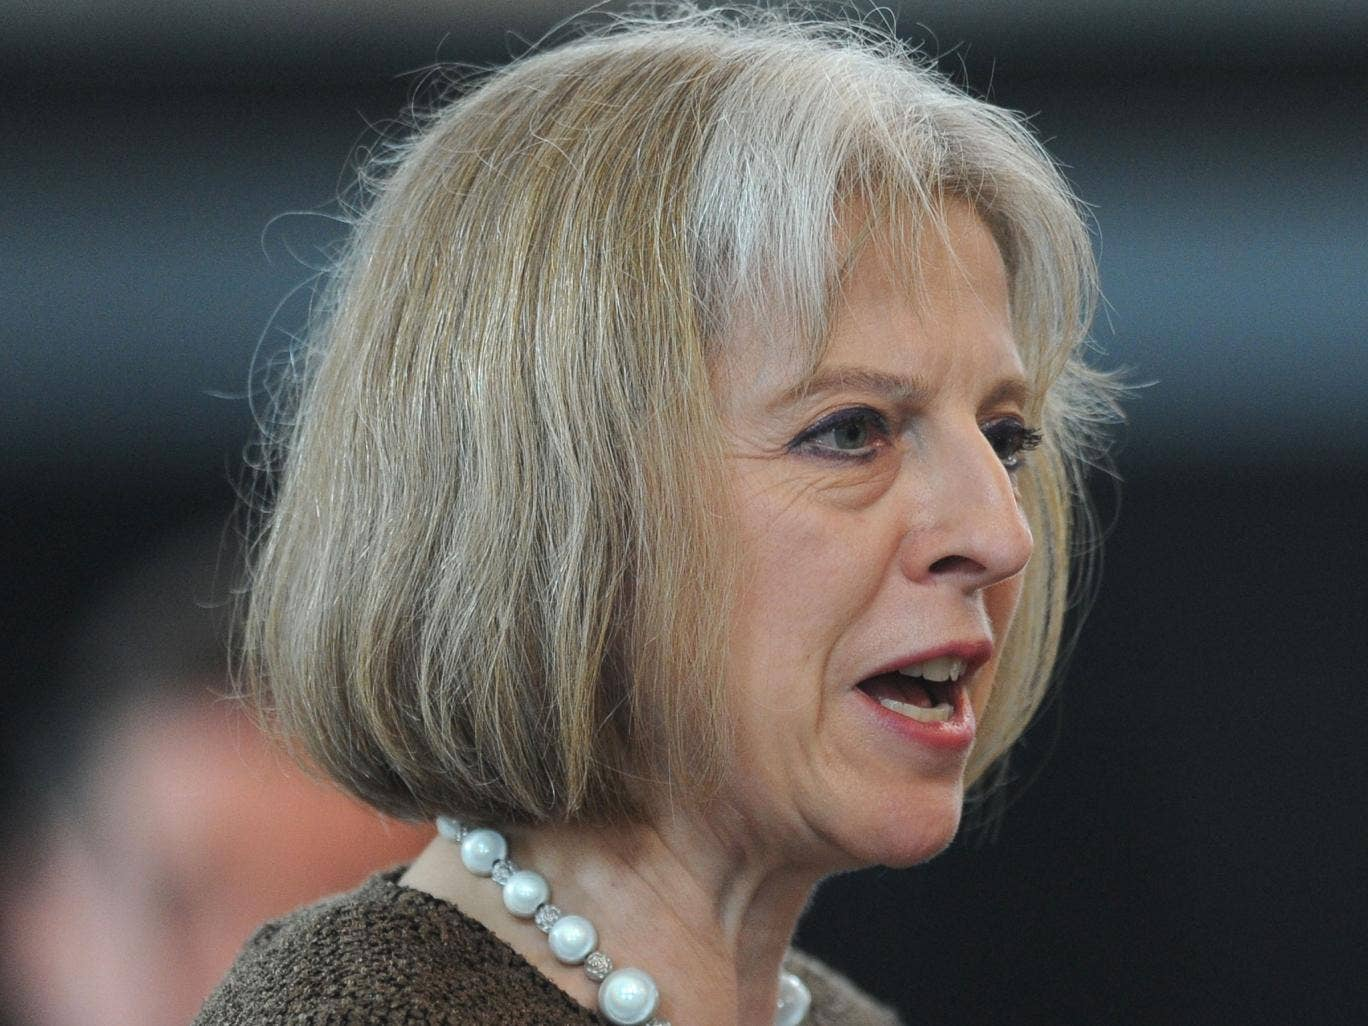 The Home Secretary has announced that private investigators will now need a license to work